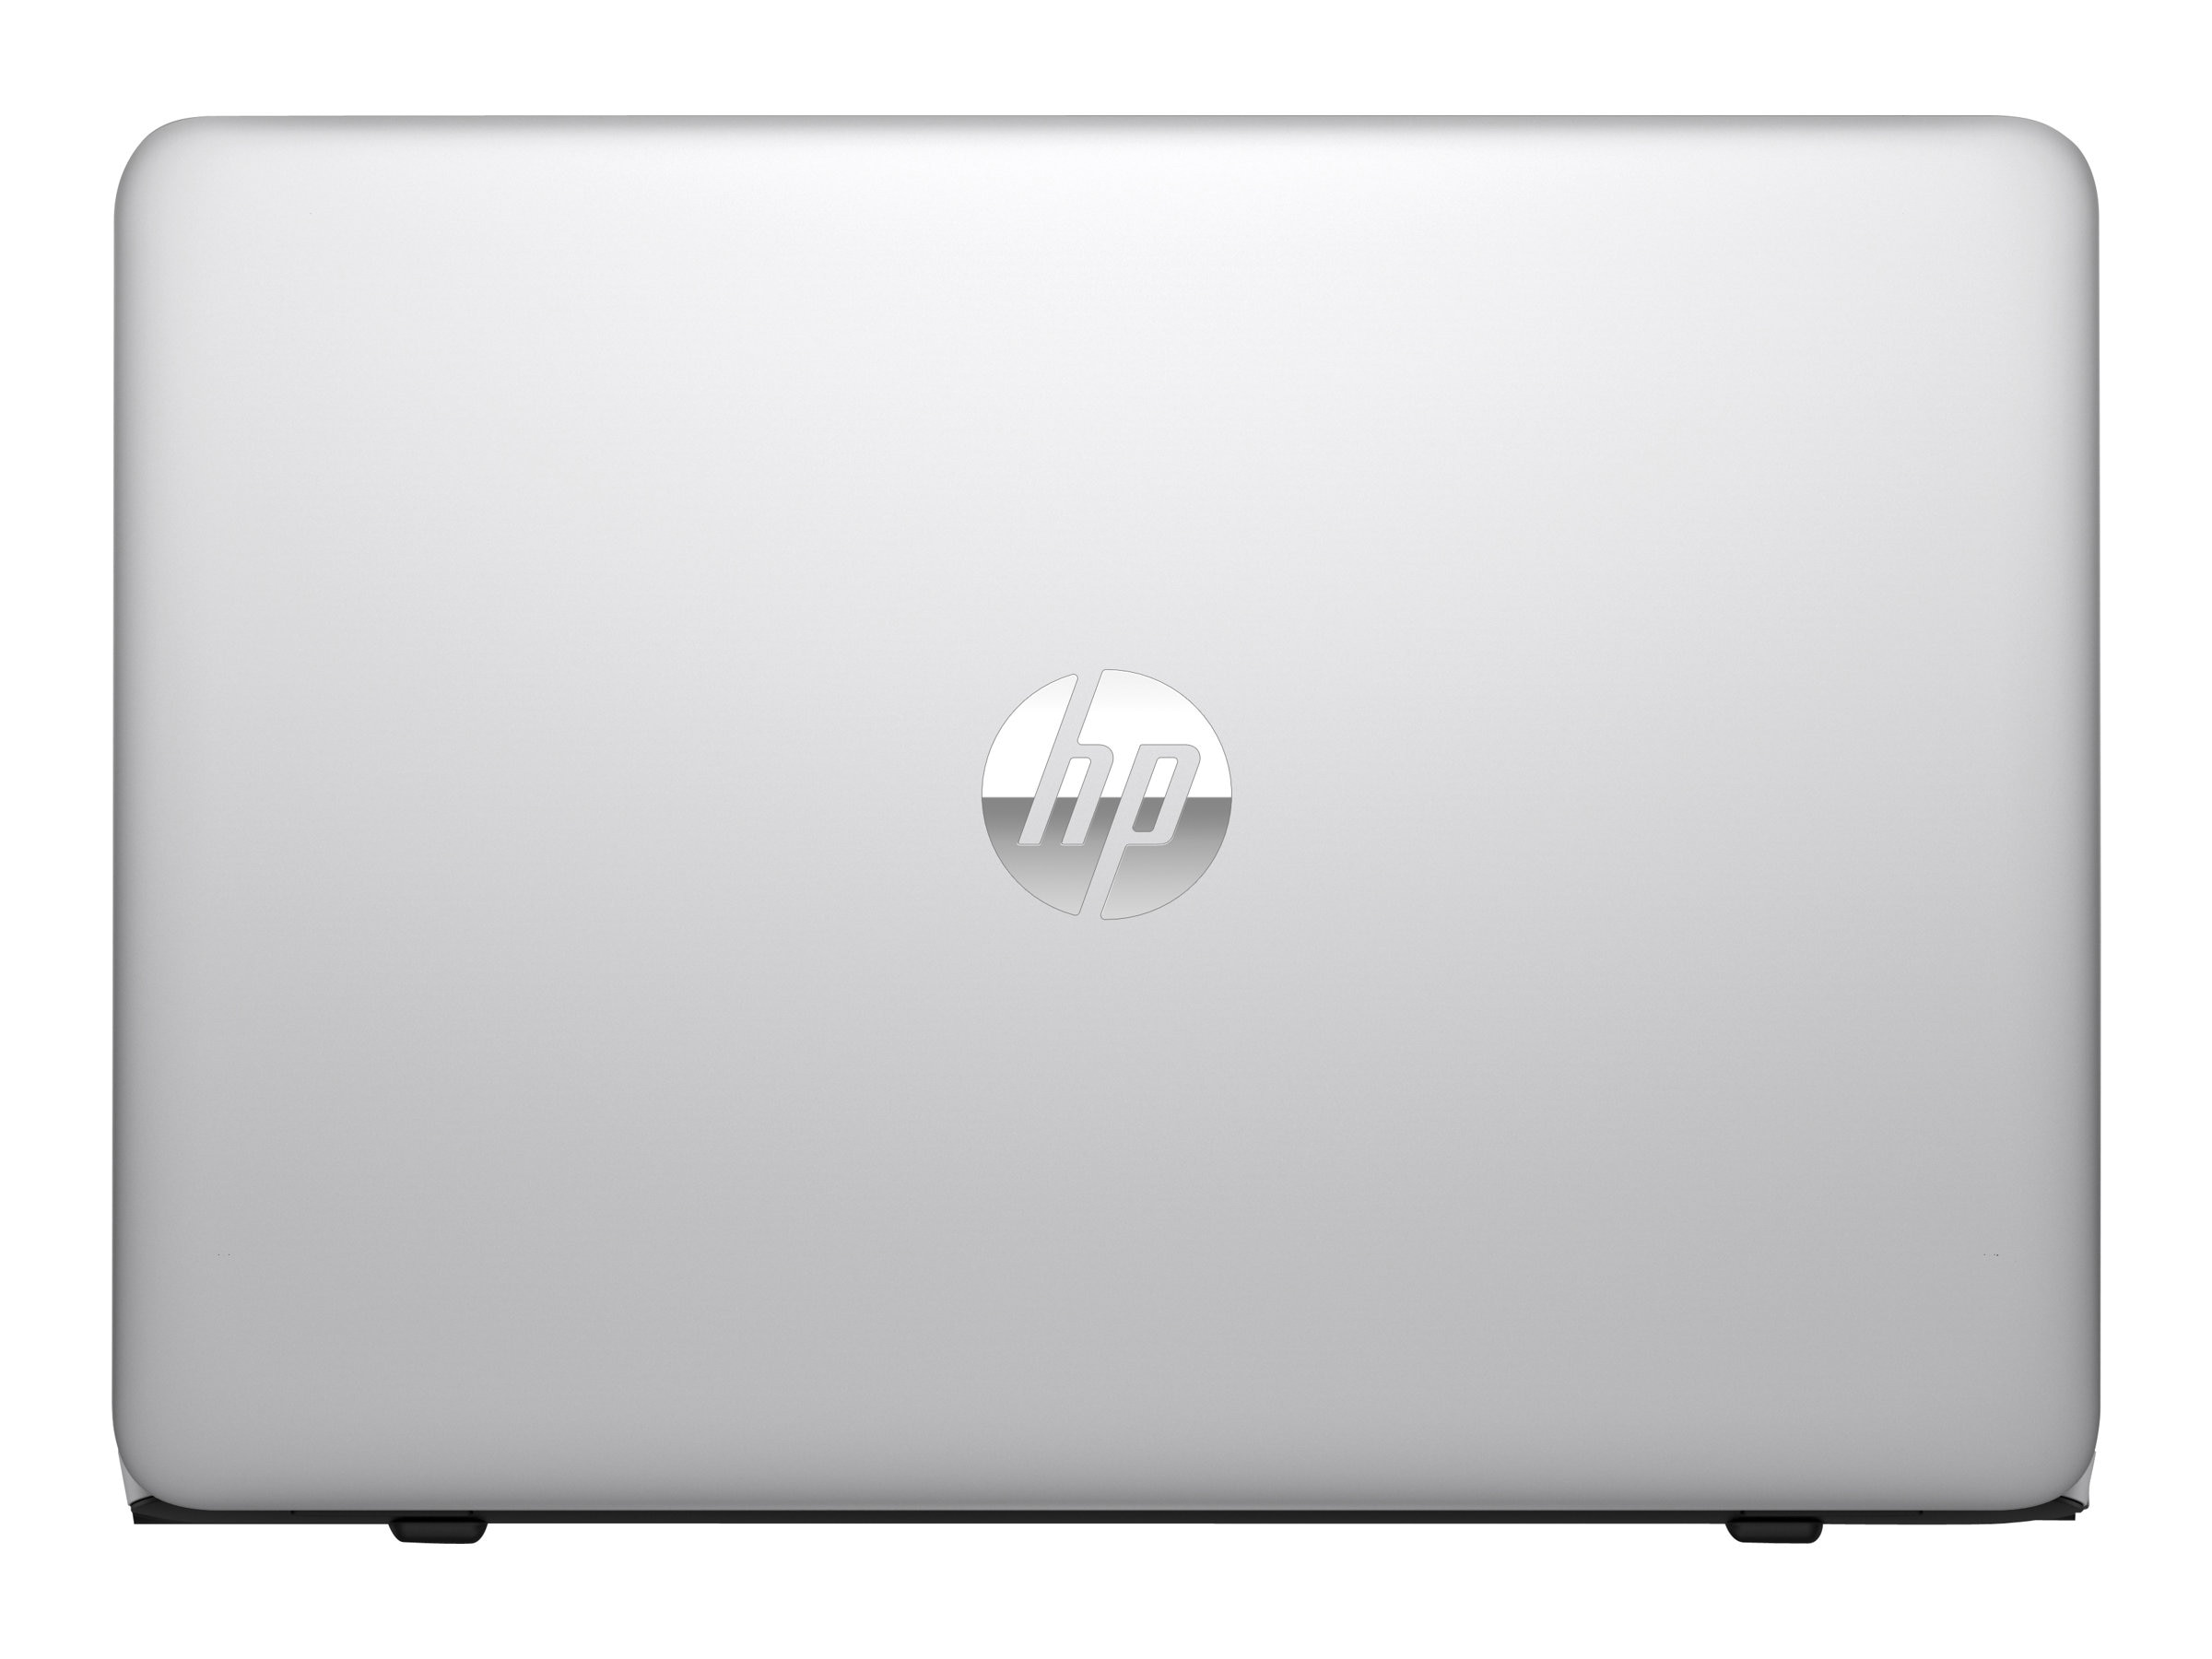 HP mt42 Mobile Thin Client AMD QC A8-8600B 1.6GHz 4GB 32GB SSD ac BT WC 3C 14 FHD WES7E, X9U29UA#ABA